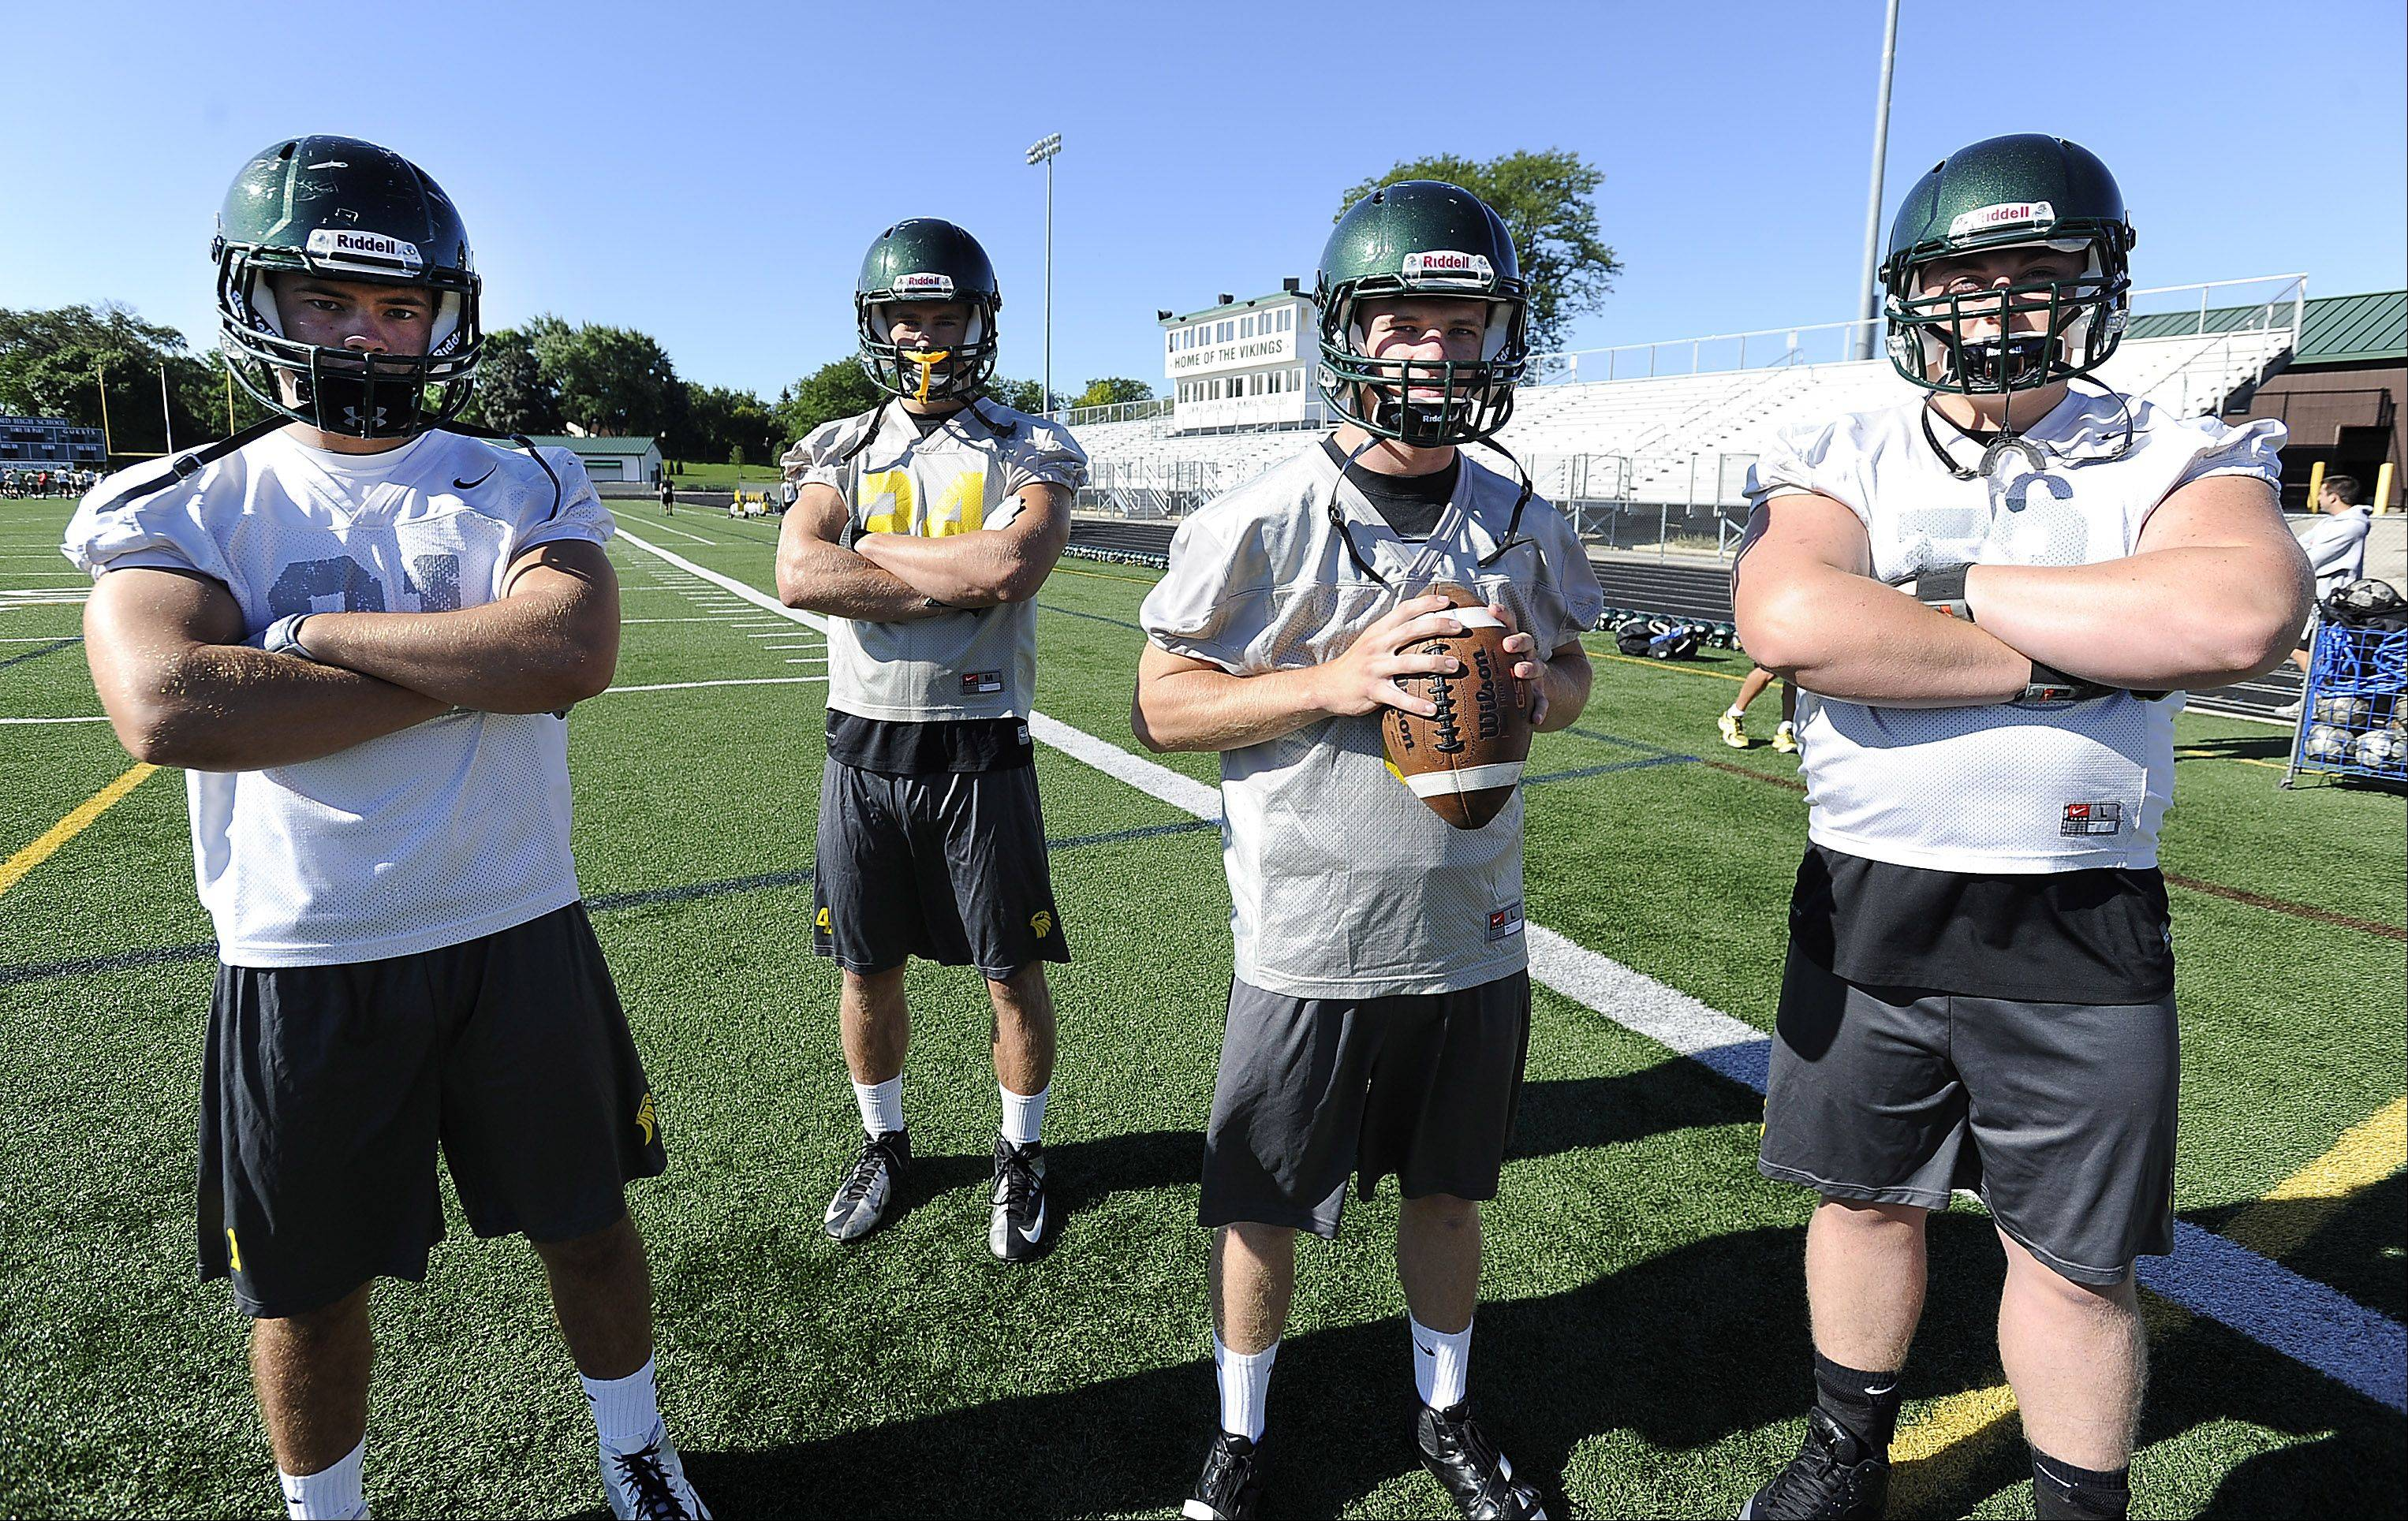 Fremd football players quarterback Sam Beutler, center, with teammates Jeff McGlade, running back, Matt Konopka, linebacker and Brad Ruehrdanz, offensive tackle take the field.